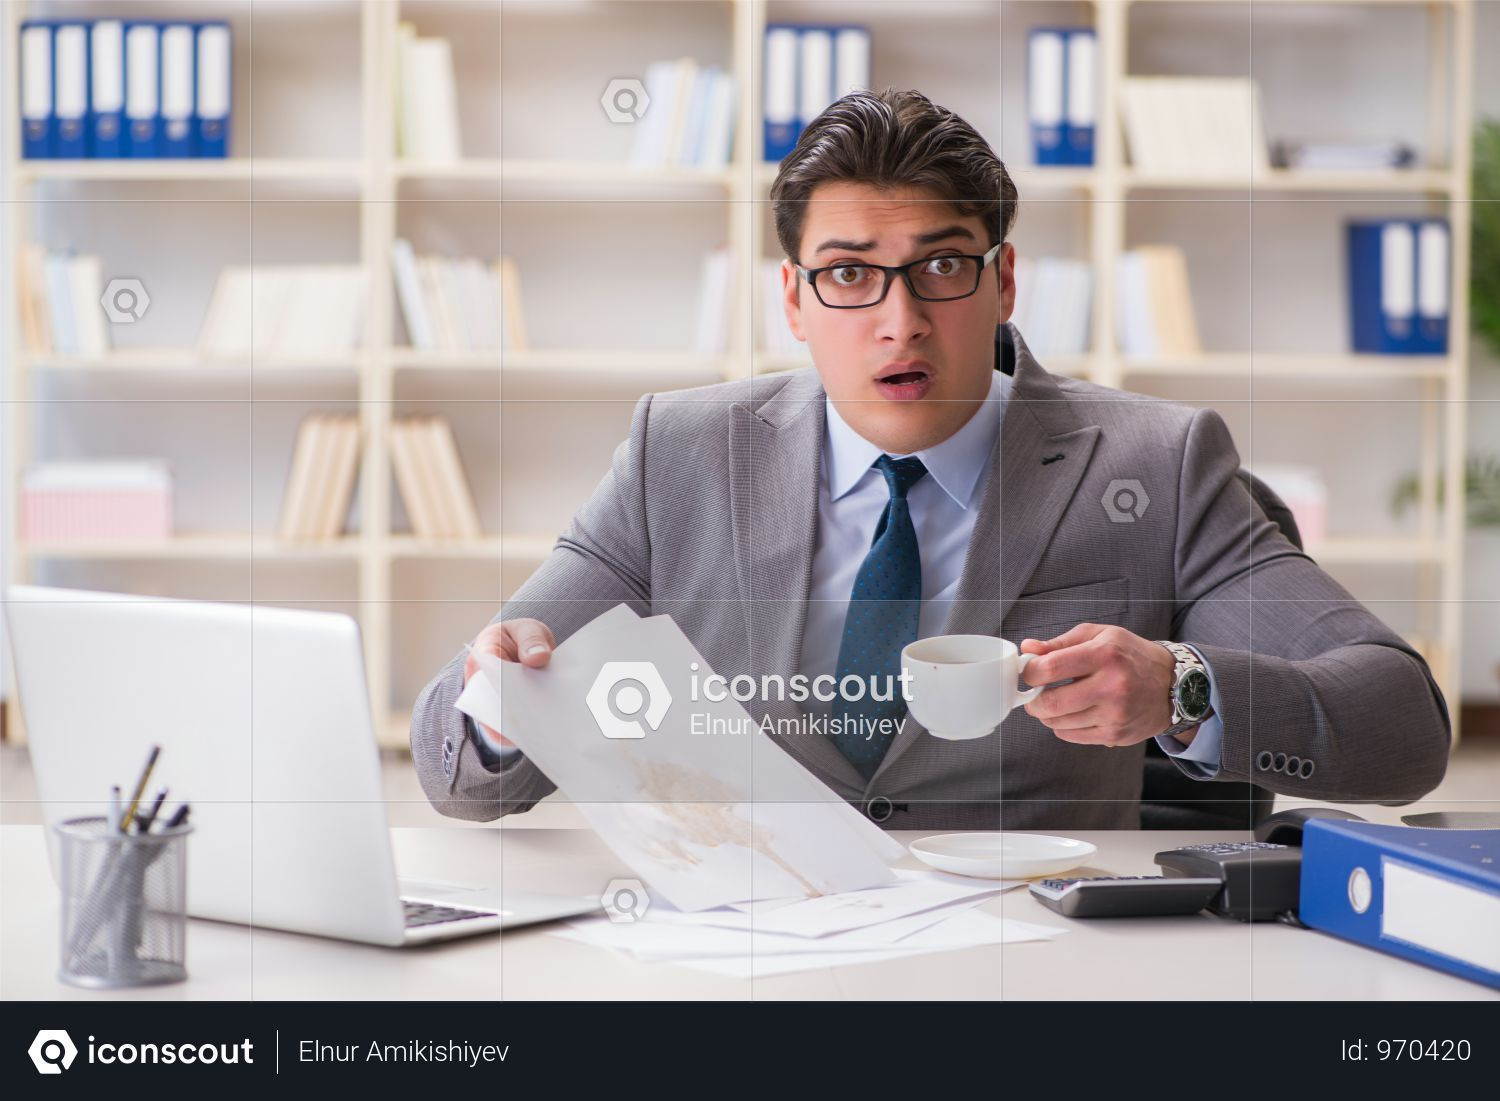 Businessman Spilling Coffee On Important Documents Photo #importantdocuments Businessman Spilling Coffee On Important Documents Photo #importantdocuments Businessman Spilling Coffee On Important Documents Photo #importantdocuments Businessman Spilling Coffee On Important Documents Photo #importantdocuments